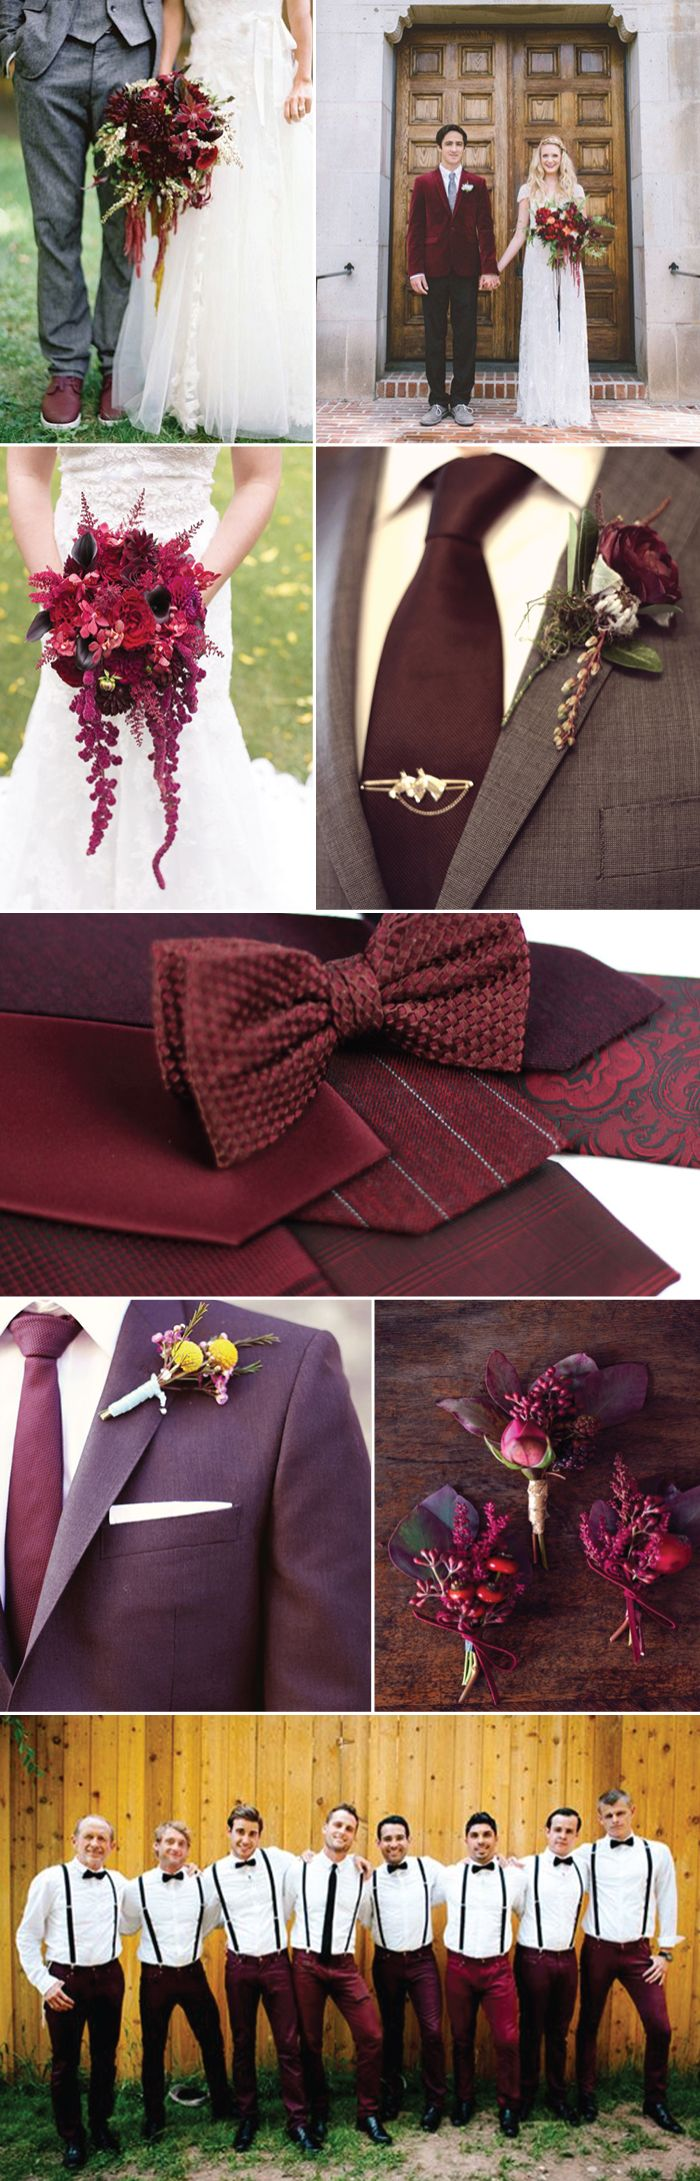 Brilliant wedding inspiration for a couple who love vintage, using Pantone's Color of the Year: Marsala!